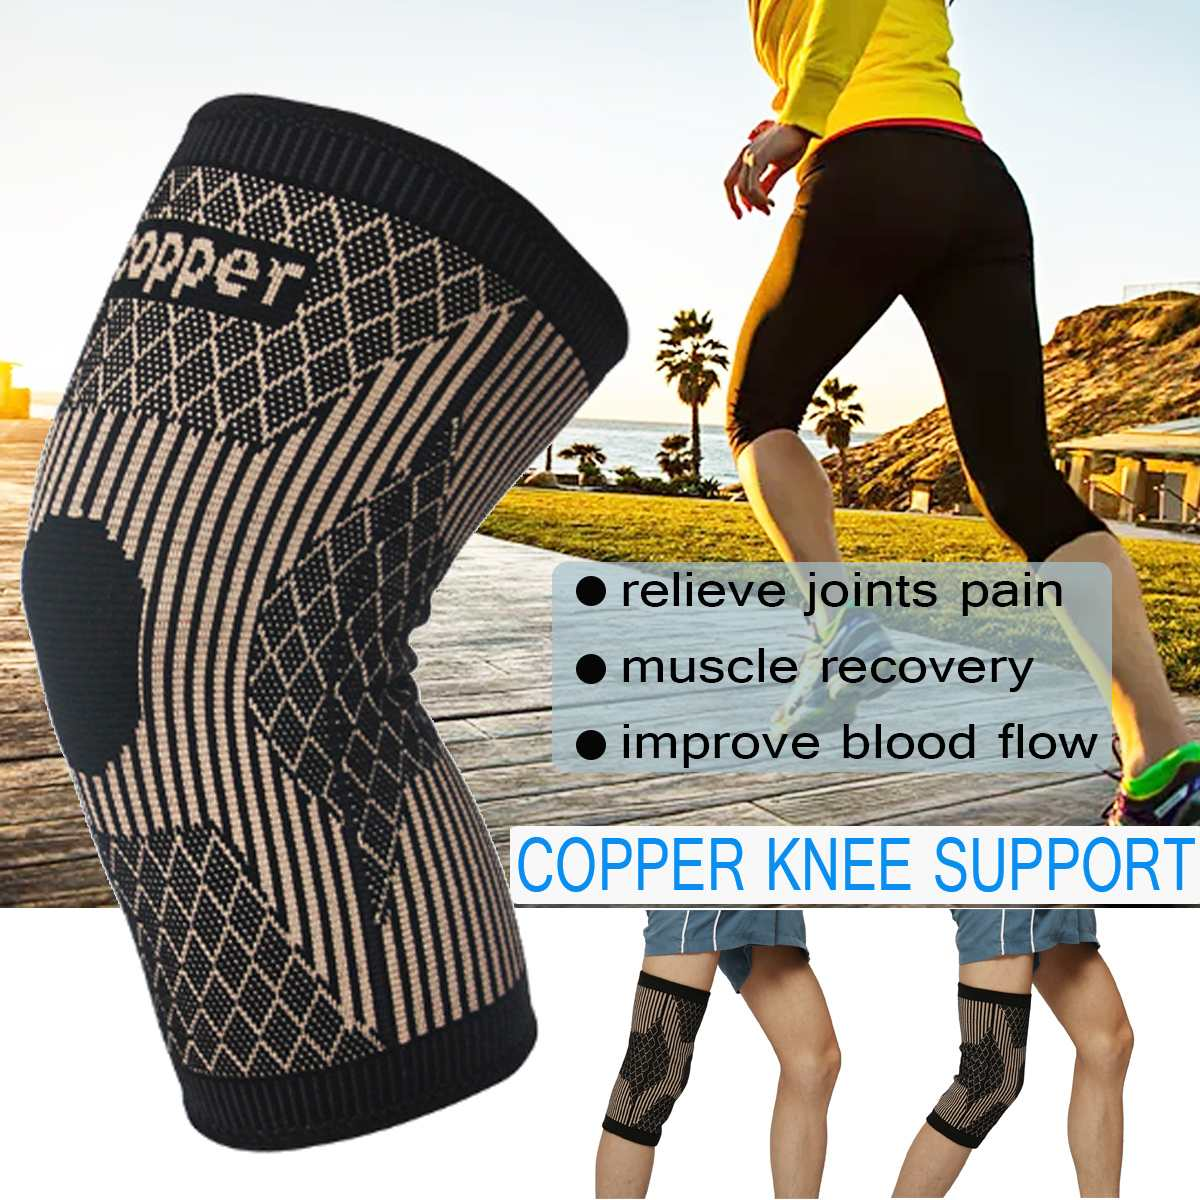 Copper Knee Protector Pad for Arthritis Leg Brace Knee Brace Support Patella Kneepad Leg Protector Wrap Personal Health Care